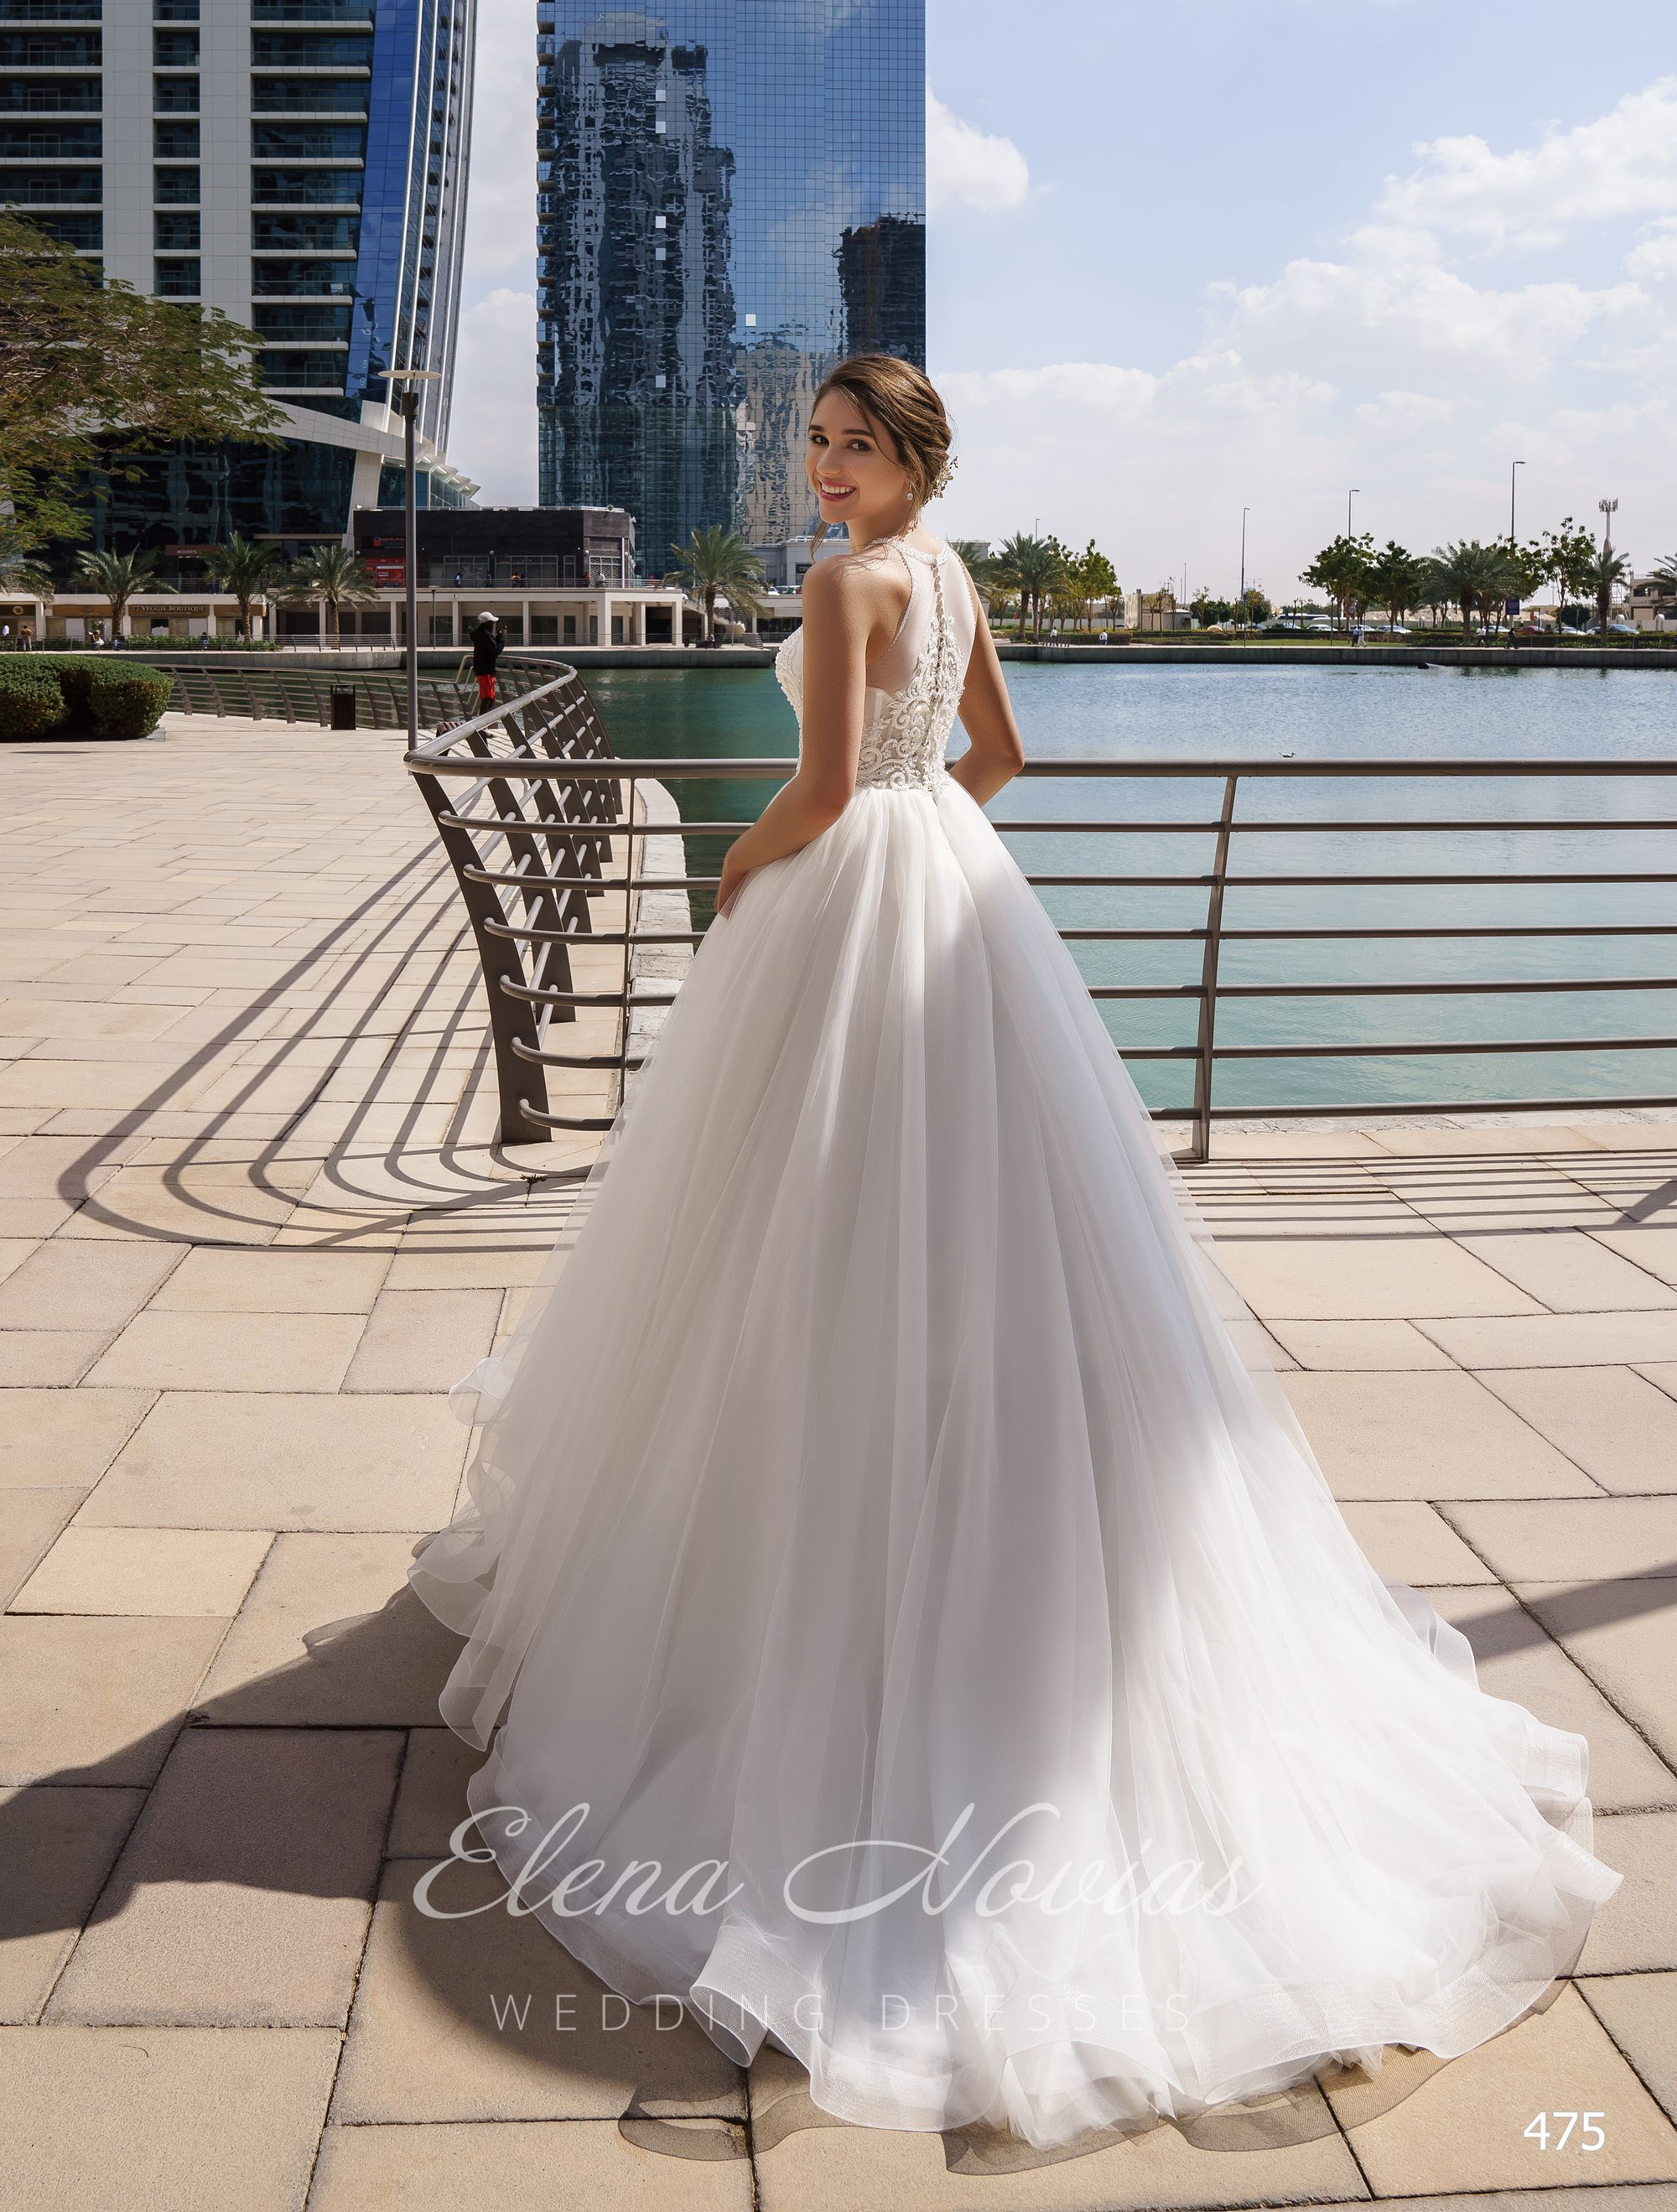 Wedding dresses 475 2